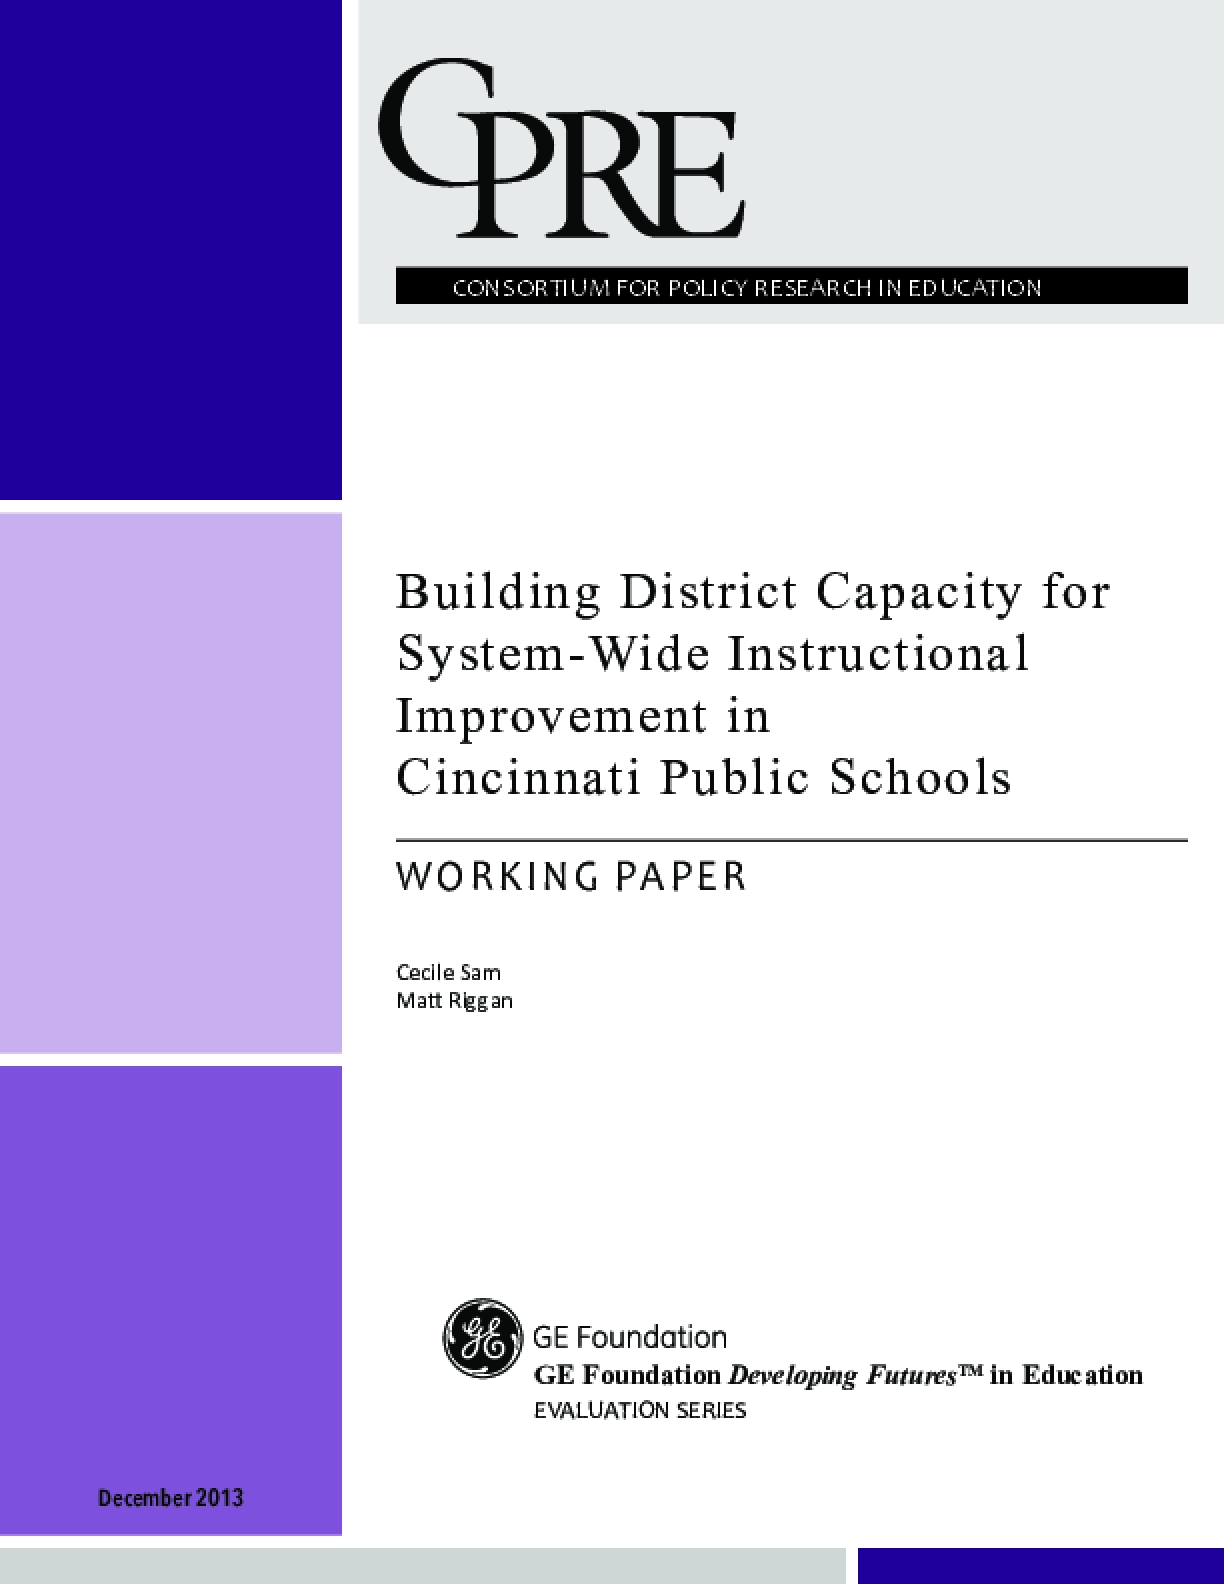 Building District Capacity for System-Wide Instructional Improvement in Cincinnati Public Schools